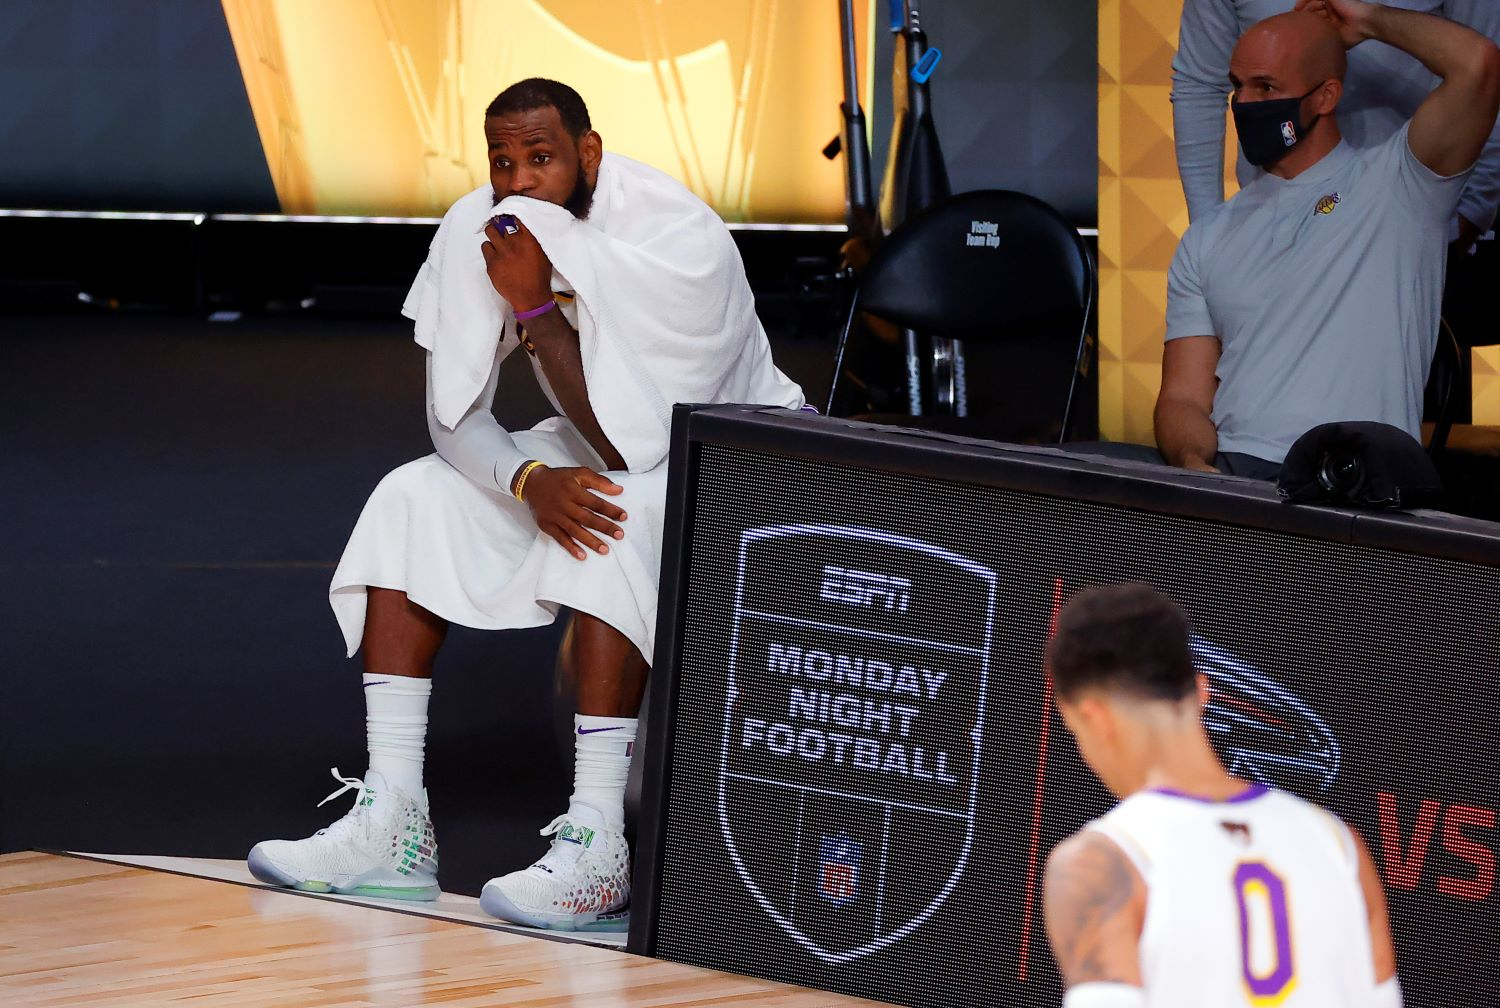 LeBron James admitted the Cavaliers would have lost to the Warriors if they had been forced to play in a bubble championship scenario in 2016.